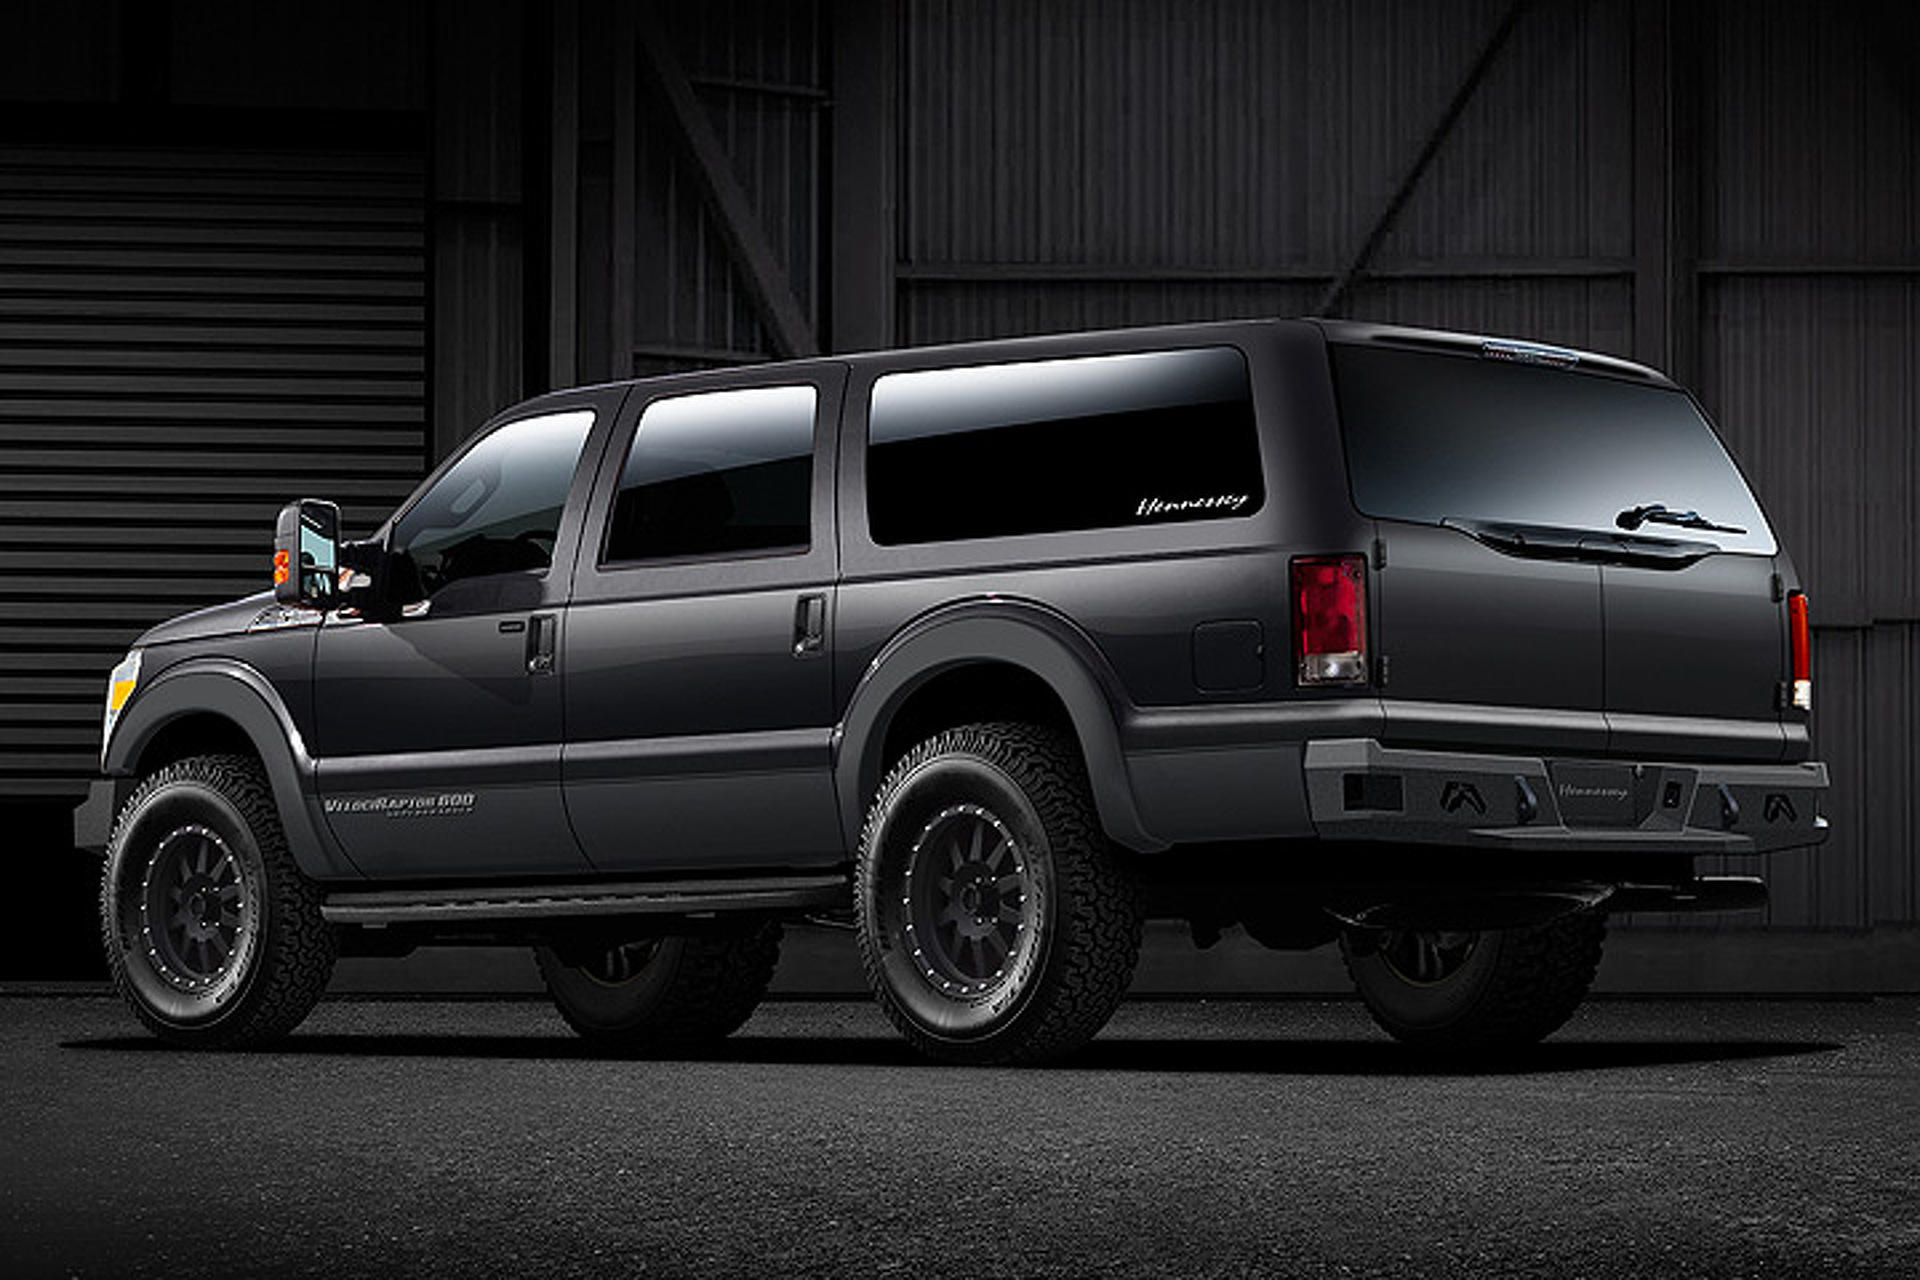 It's Alive! Hennessey Transforms Ford F-250 into VelociRaptor SUV